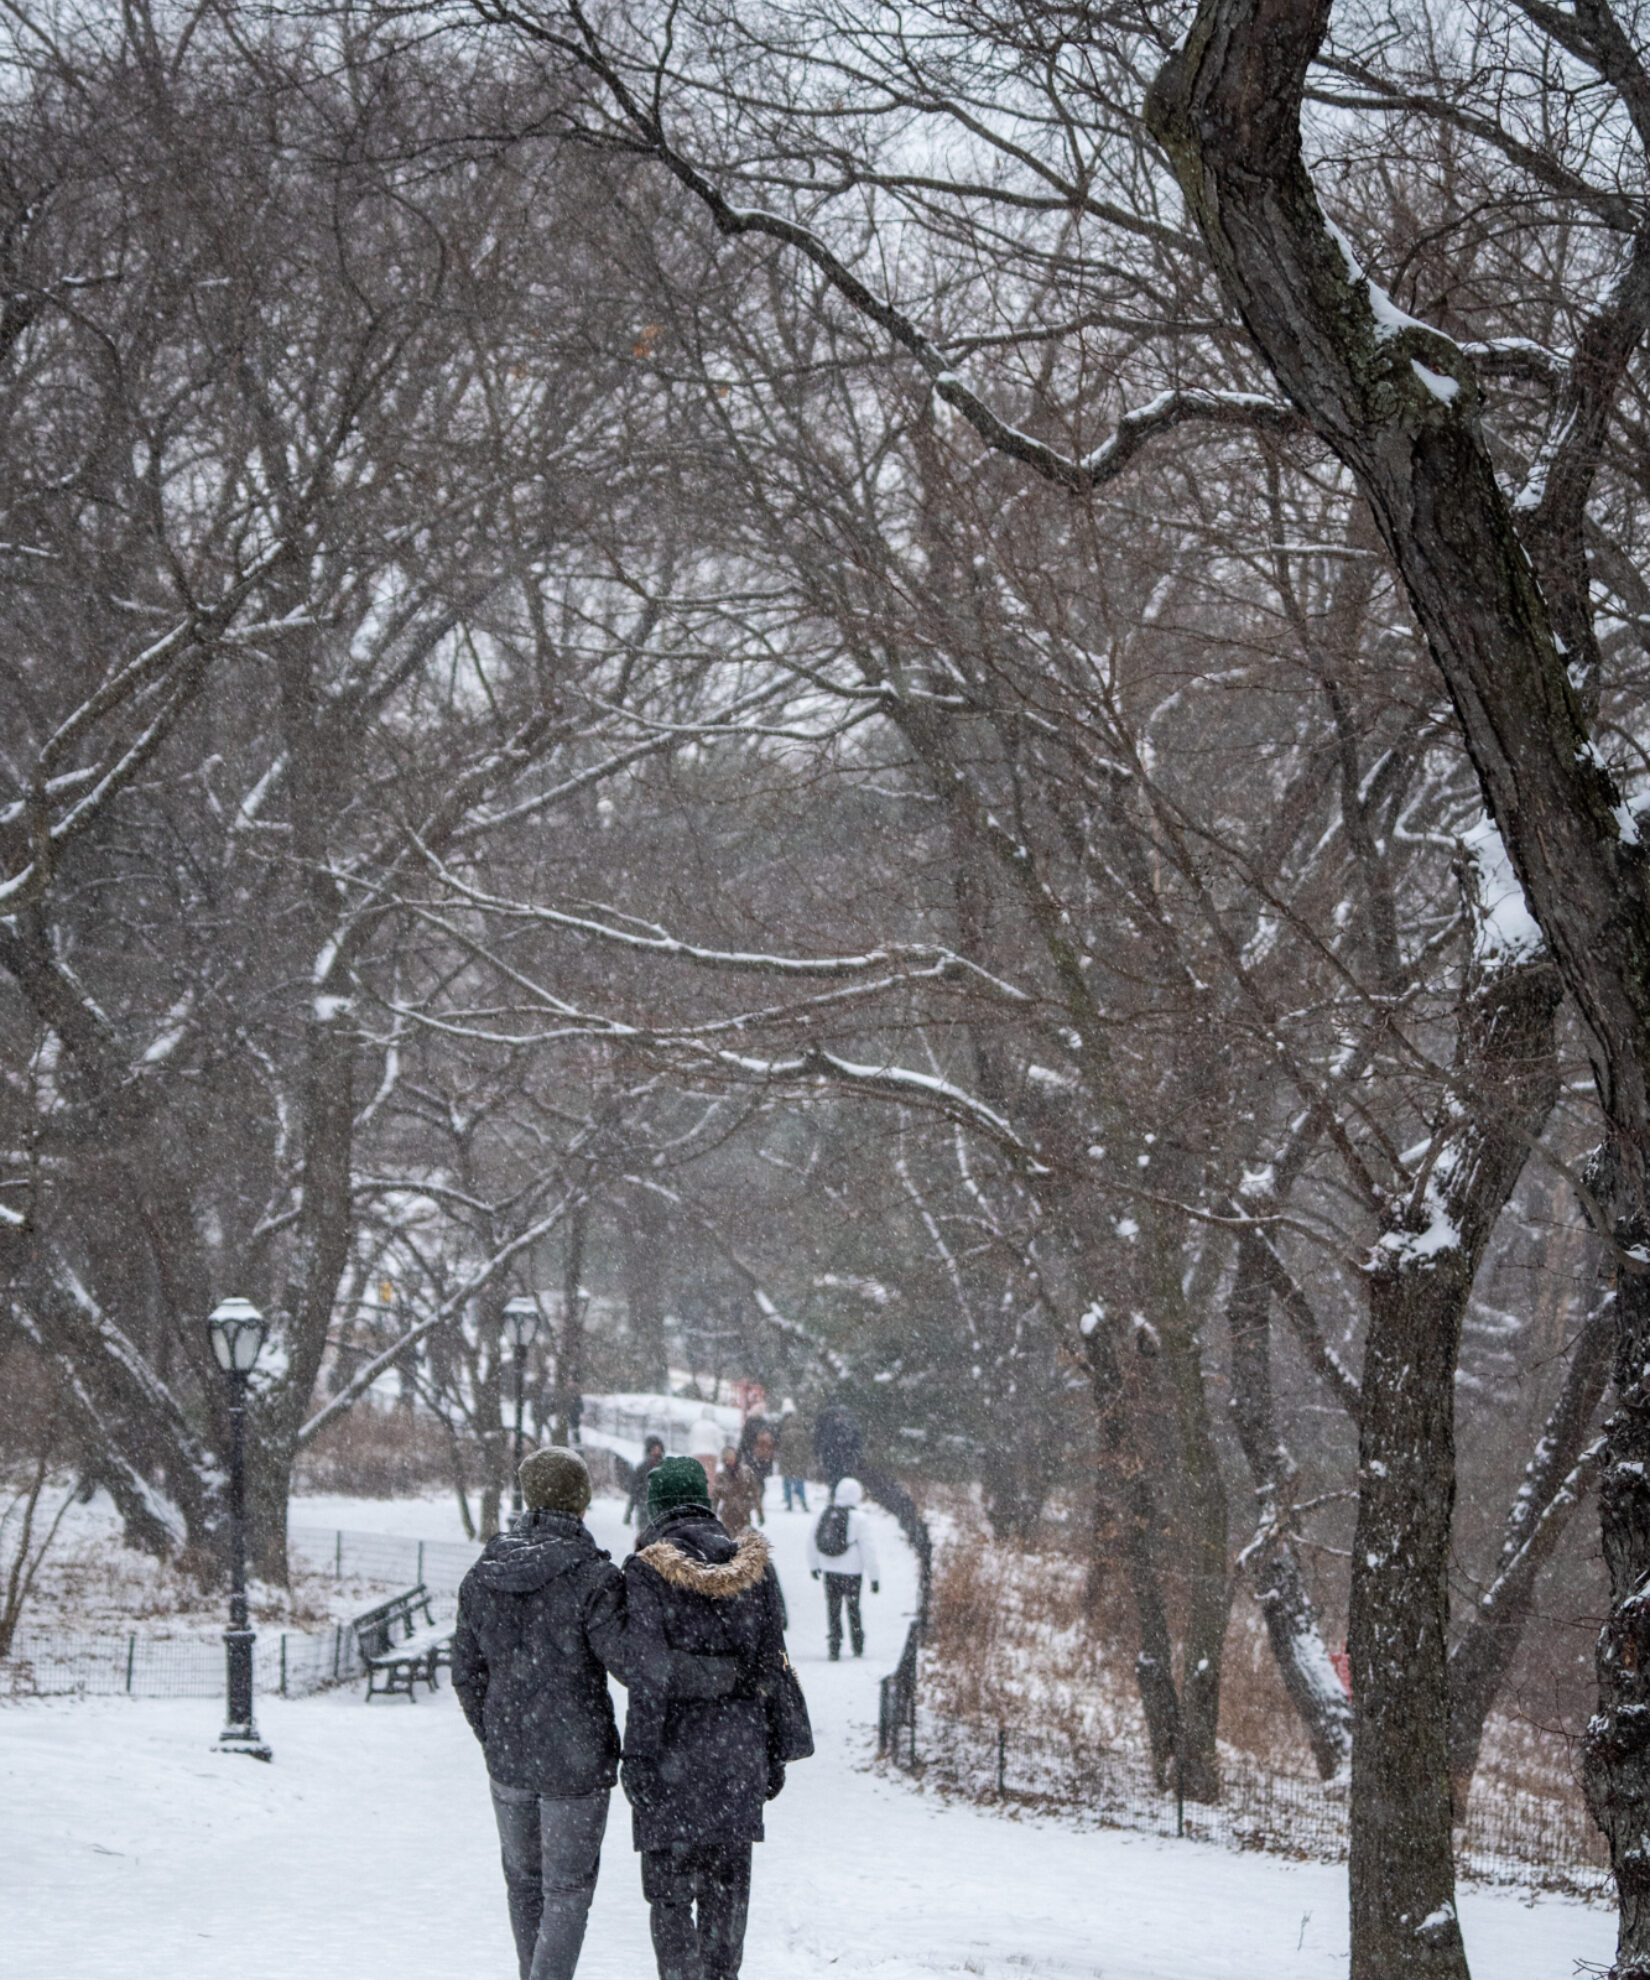 Two park goers shown bundled up for a winter stroll down a path